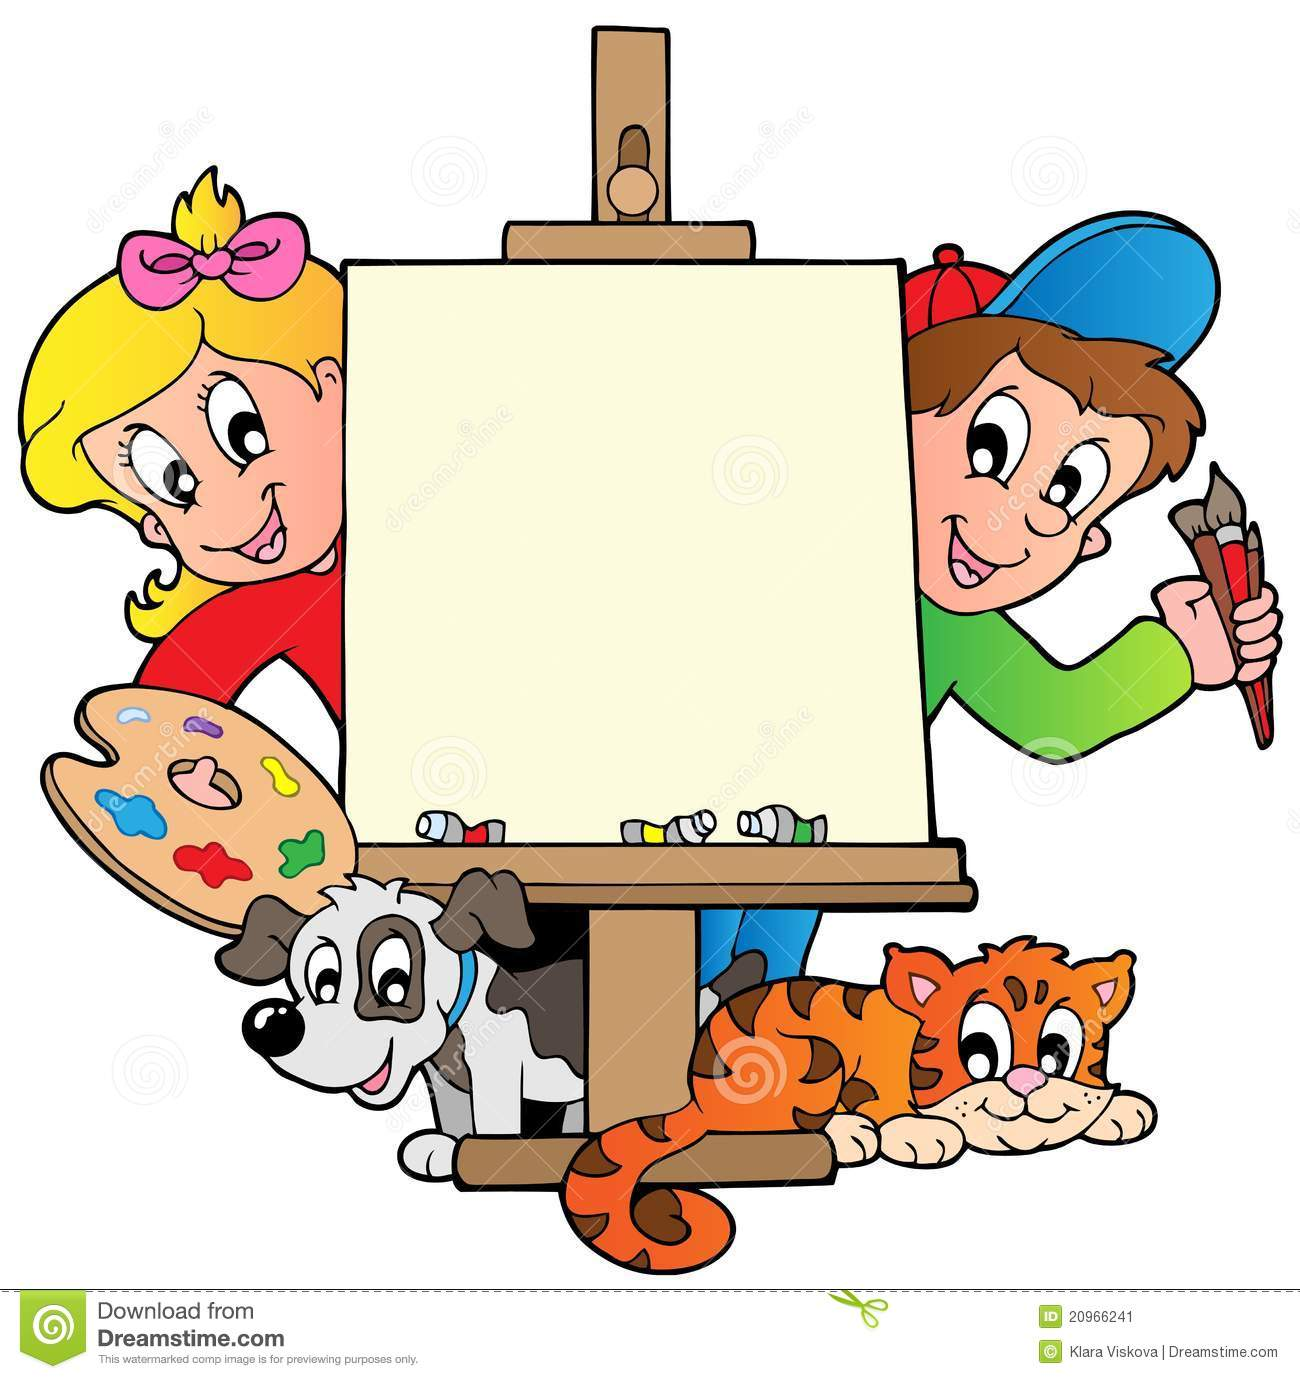 Cartoon painting clipart image free stock Kid Paint Clipart Cartoon kids | Clipart Panda - Free Clipart Images image free stock